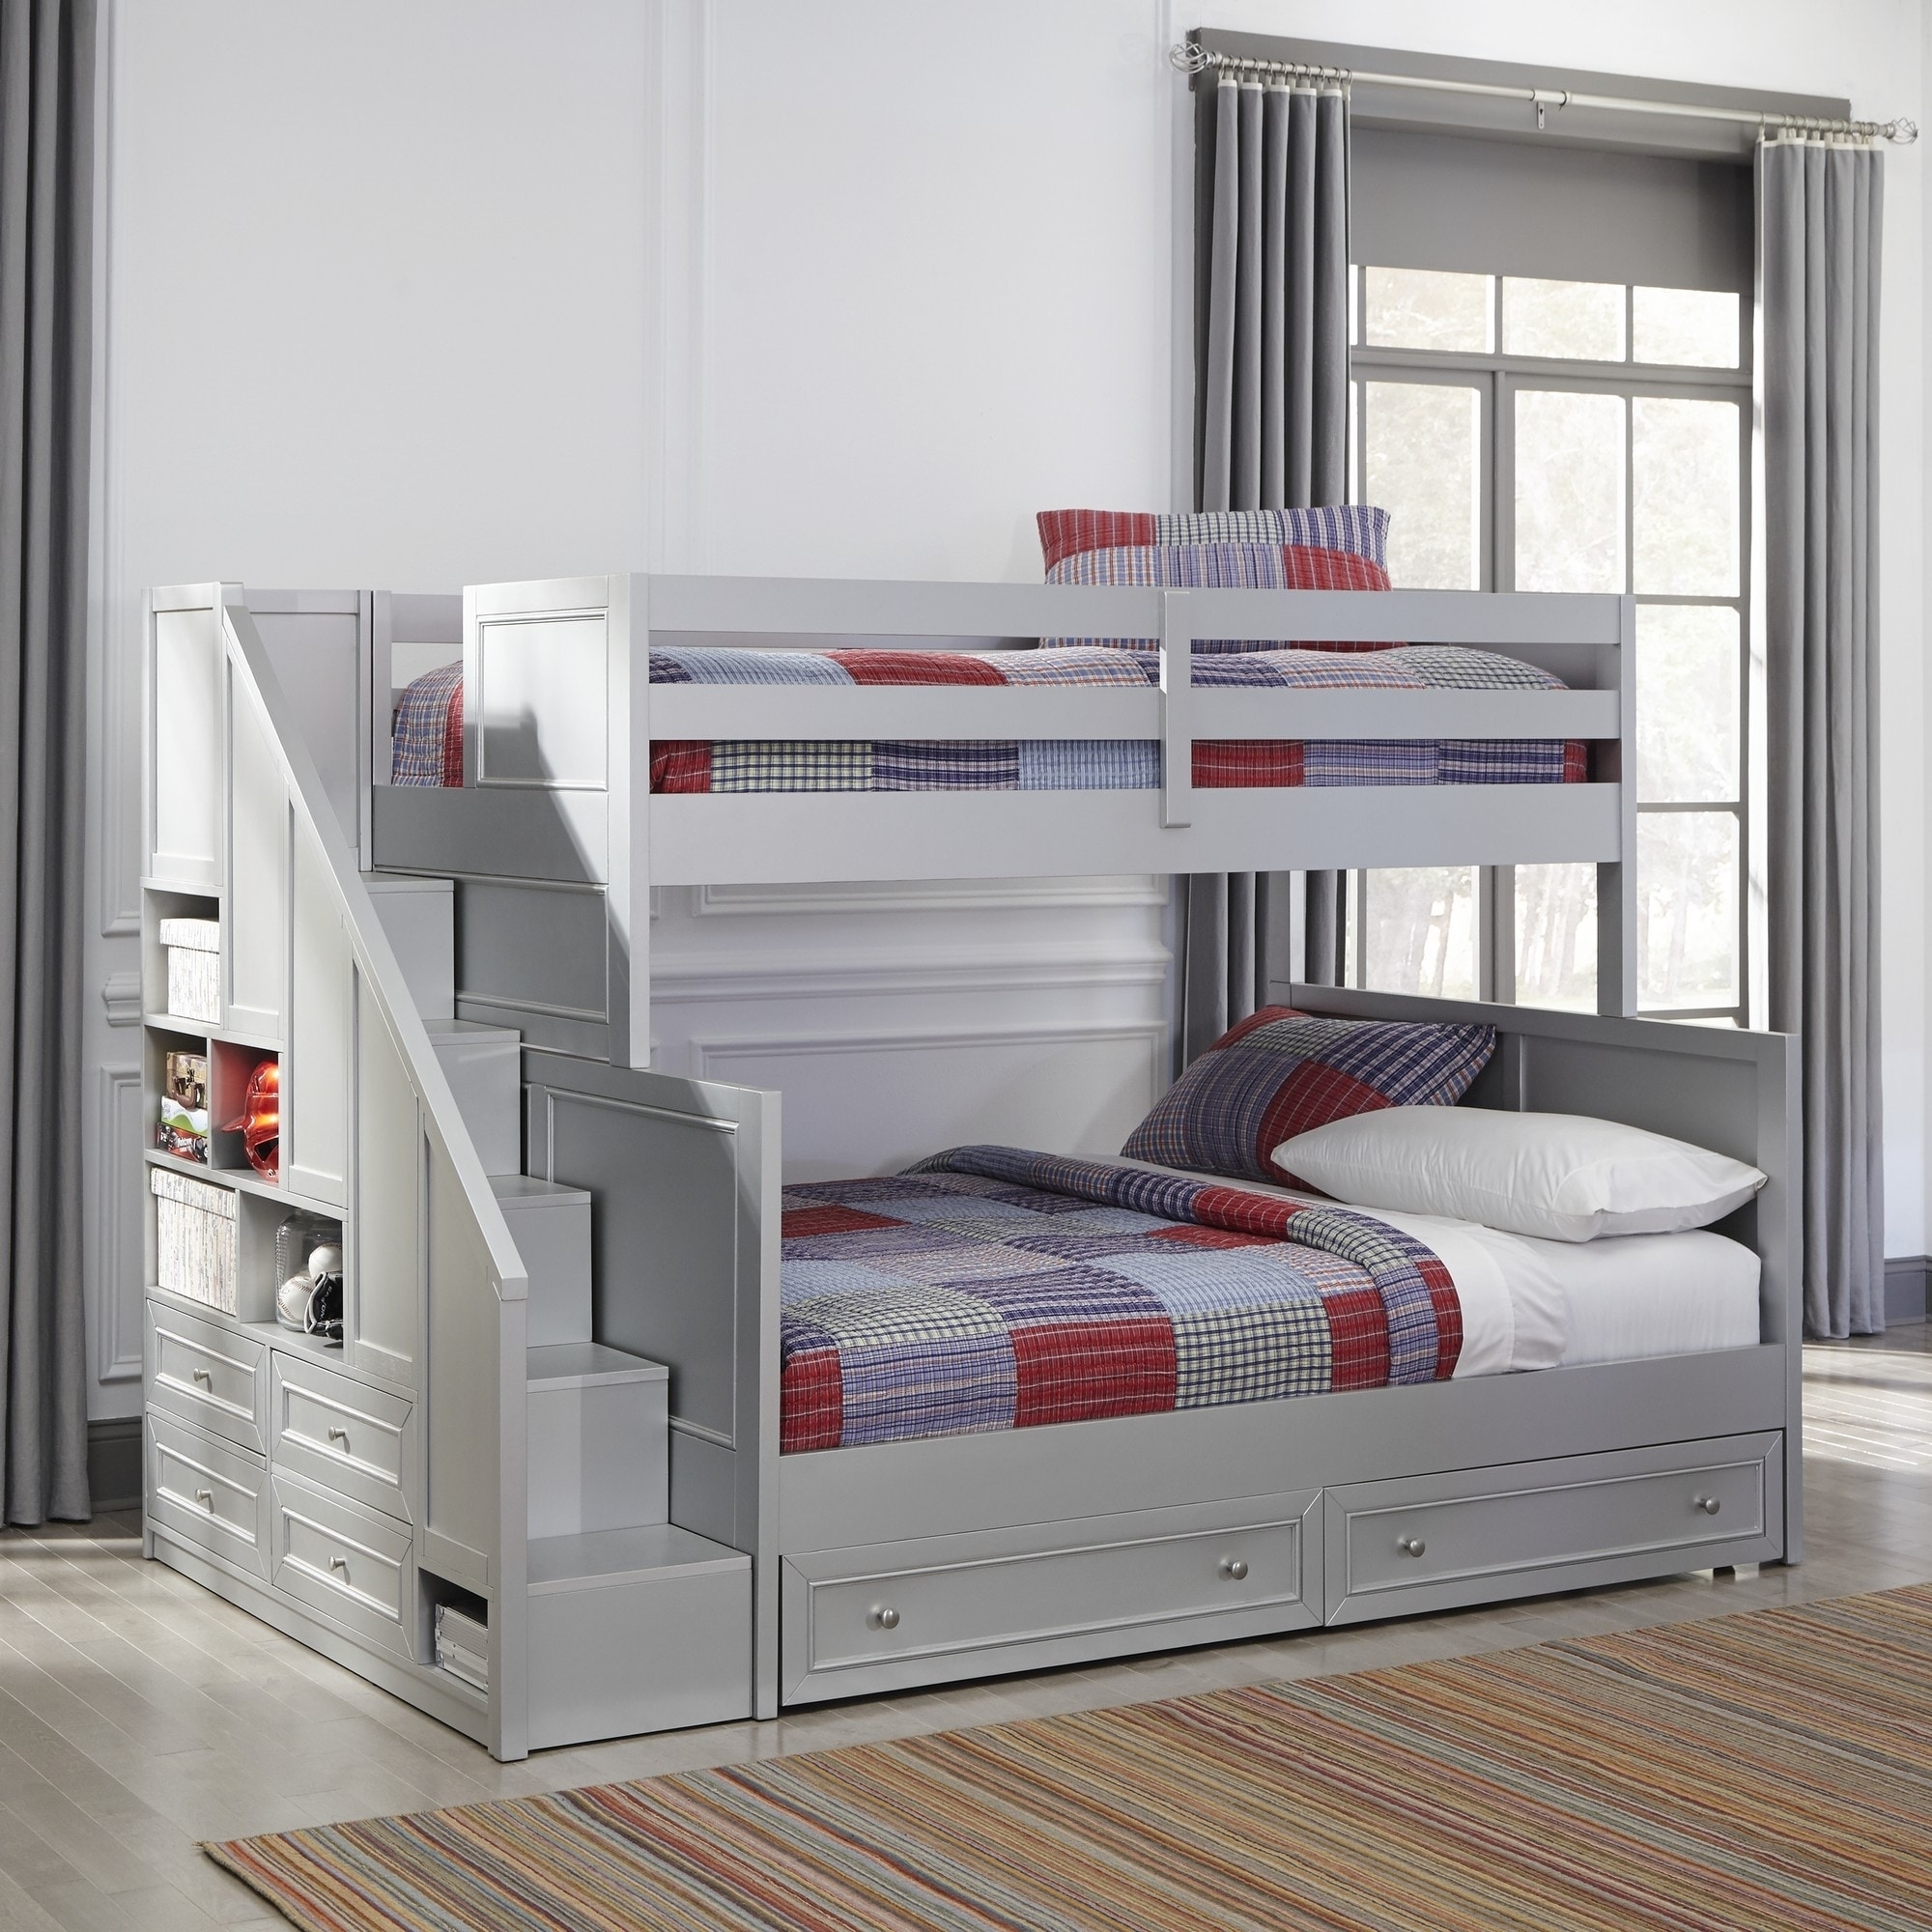 Copper Grove Dugaresa Grey Wood Twin Over Full Bunk Bed With Steps And Lower Storage Drawers Overstock 24079063